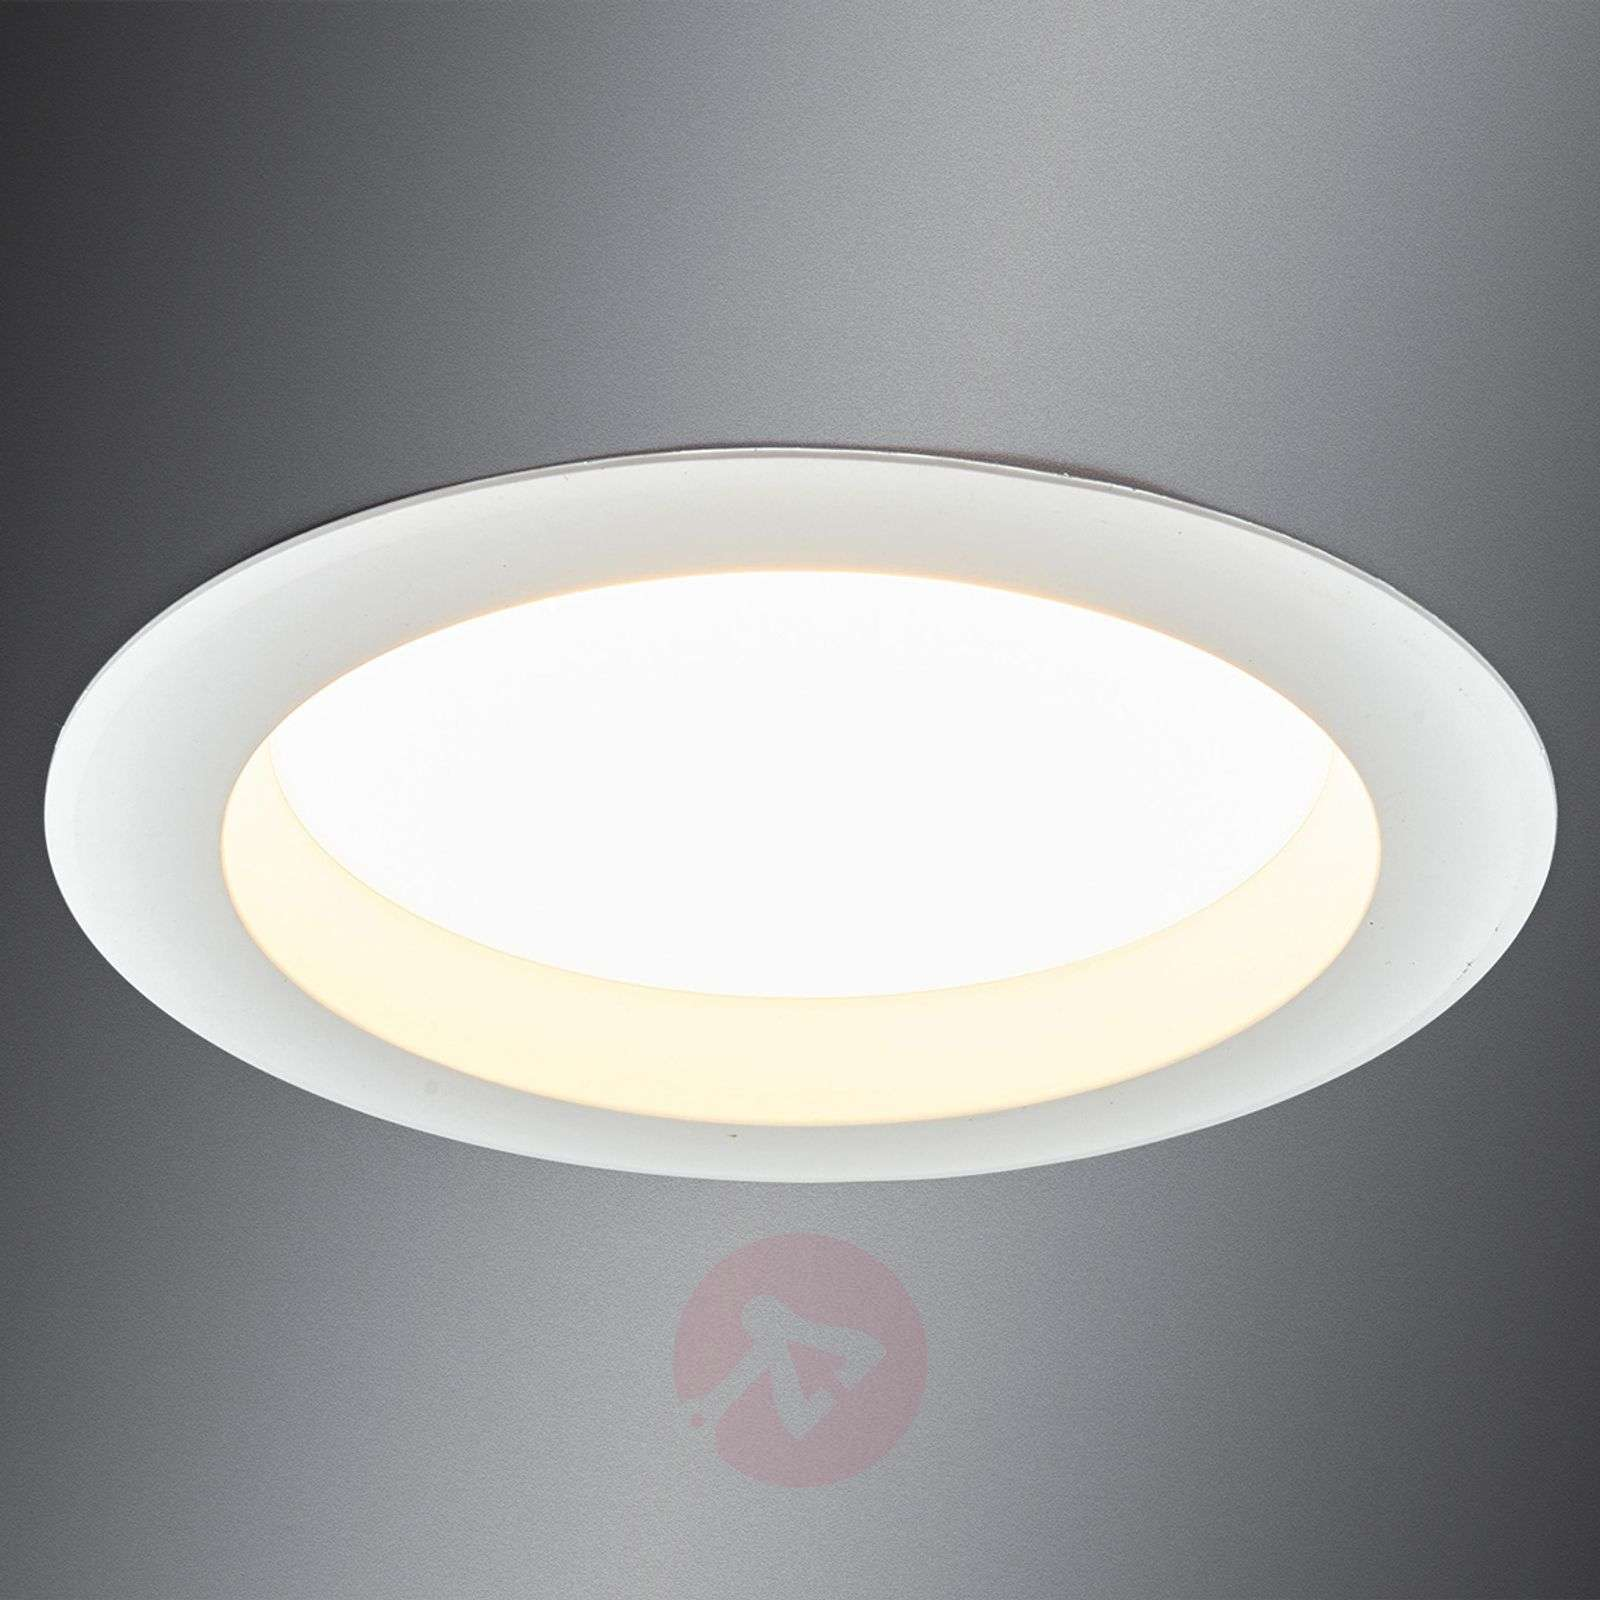 Latest Homedecor Ideas:  Latest Outdoor Led Recessed Ceiling Lights Ideas That